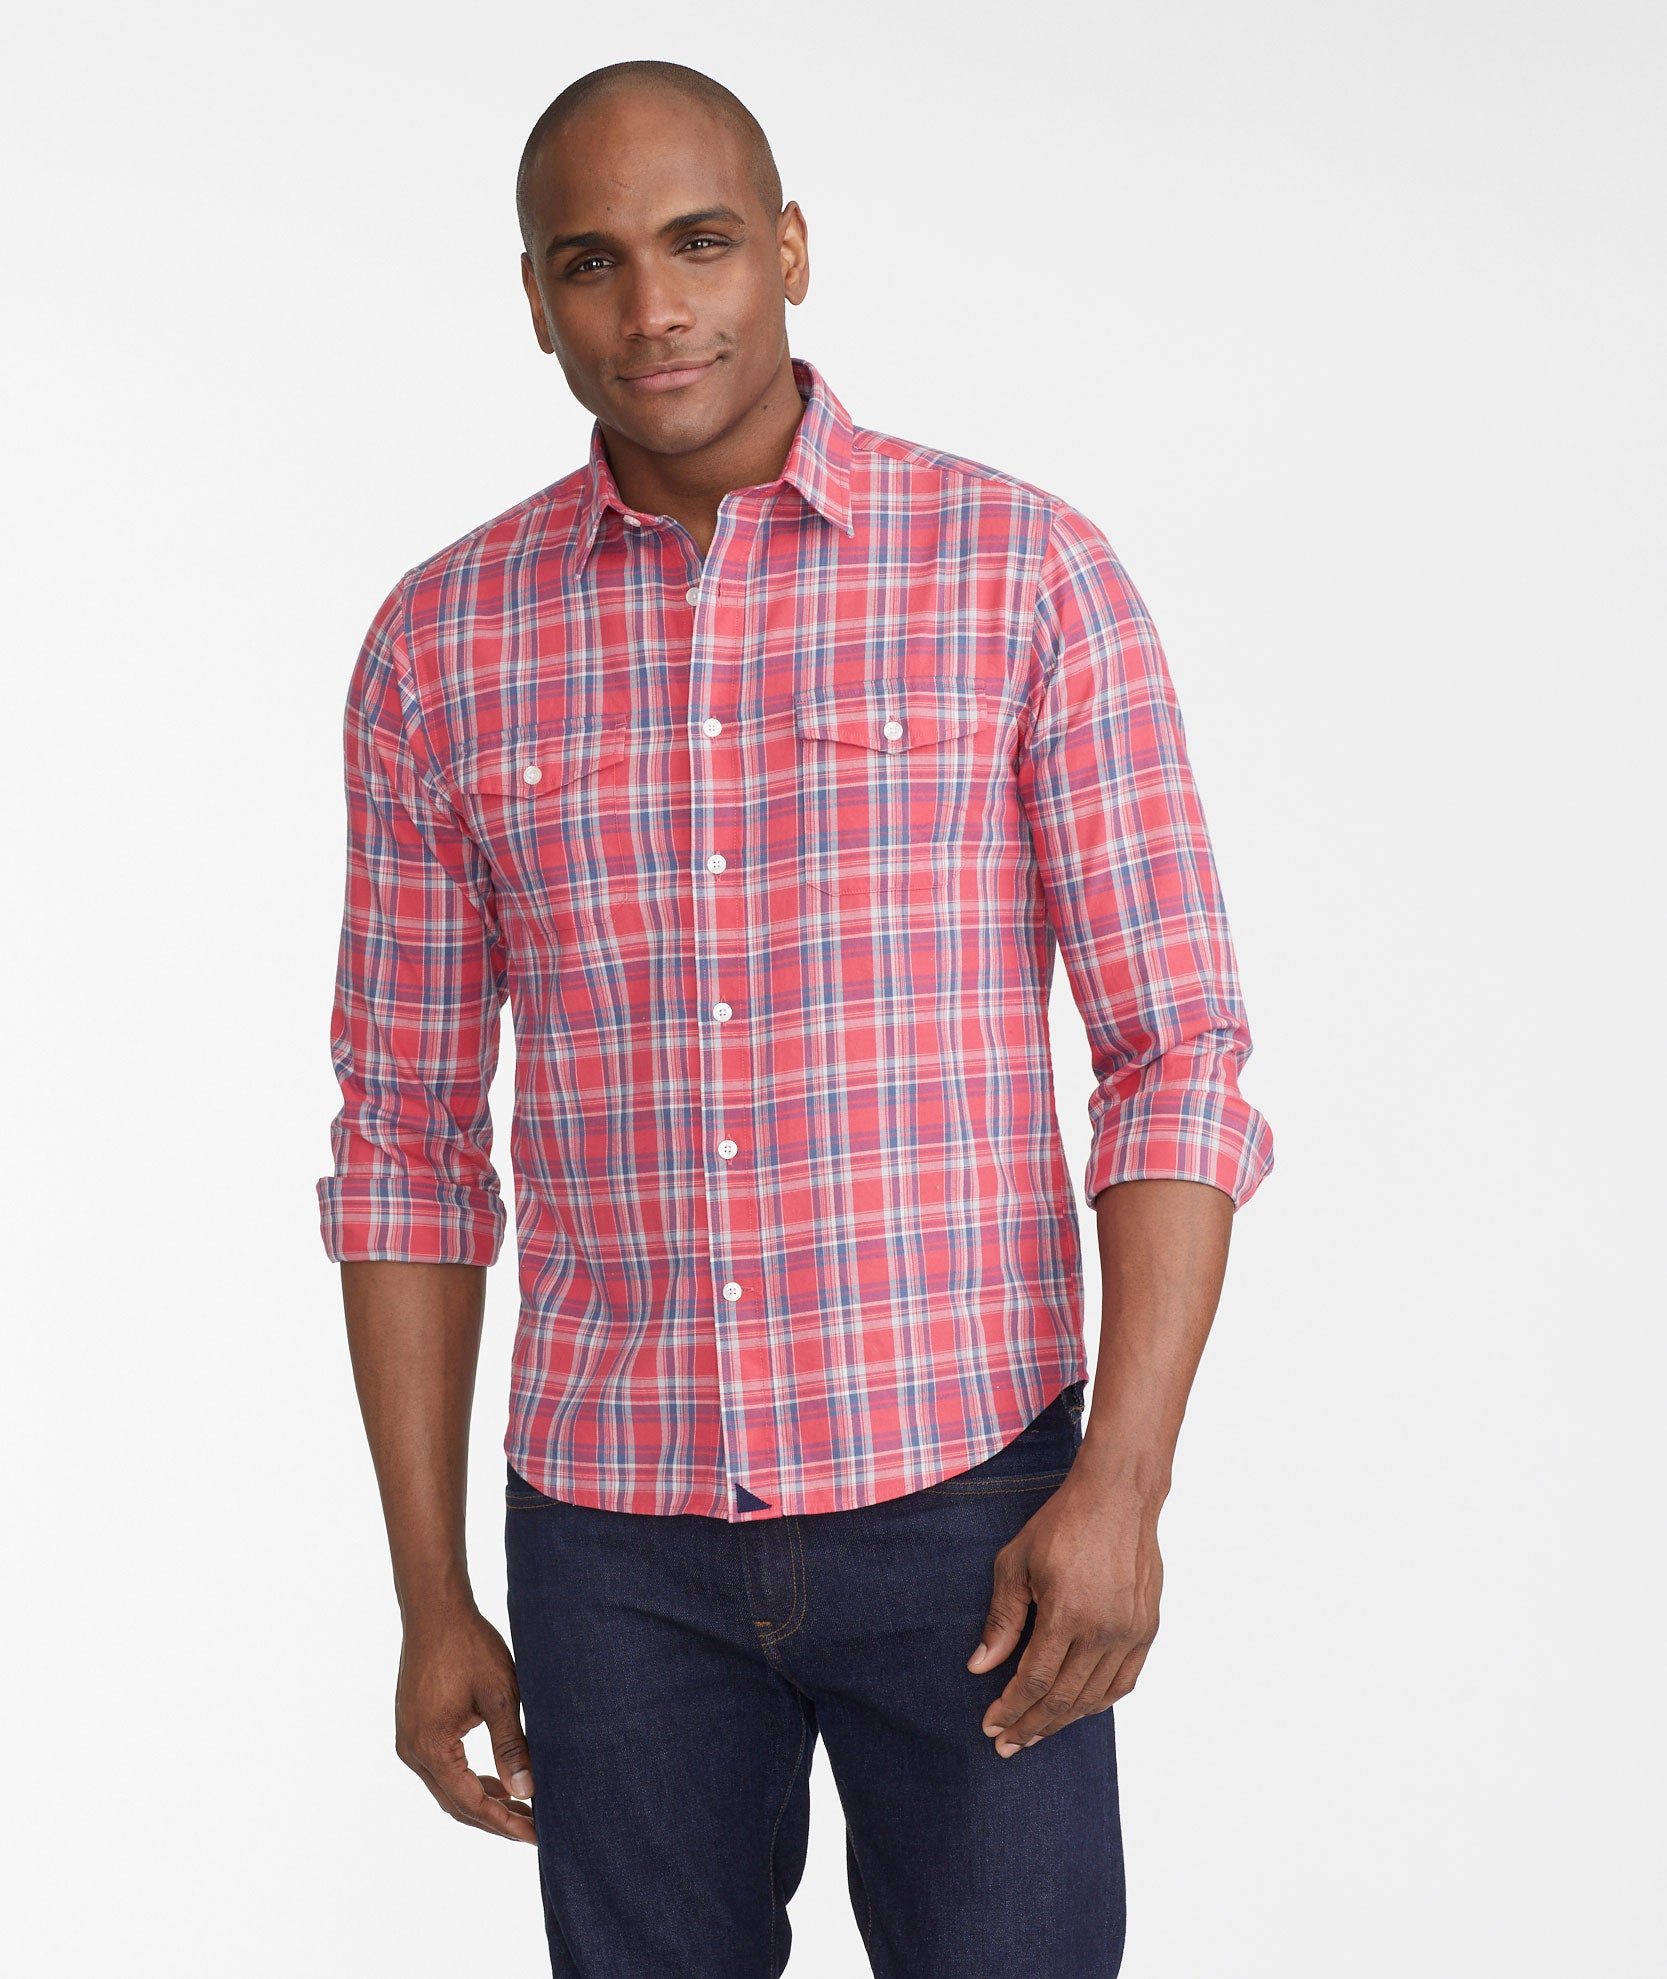 526299e9f4 Ojai Red Blue   White Plaid